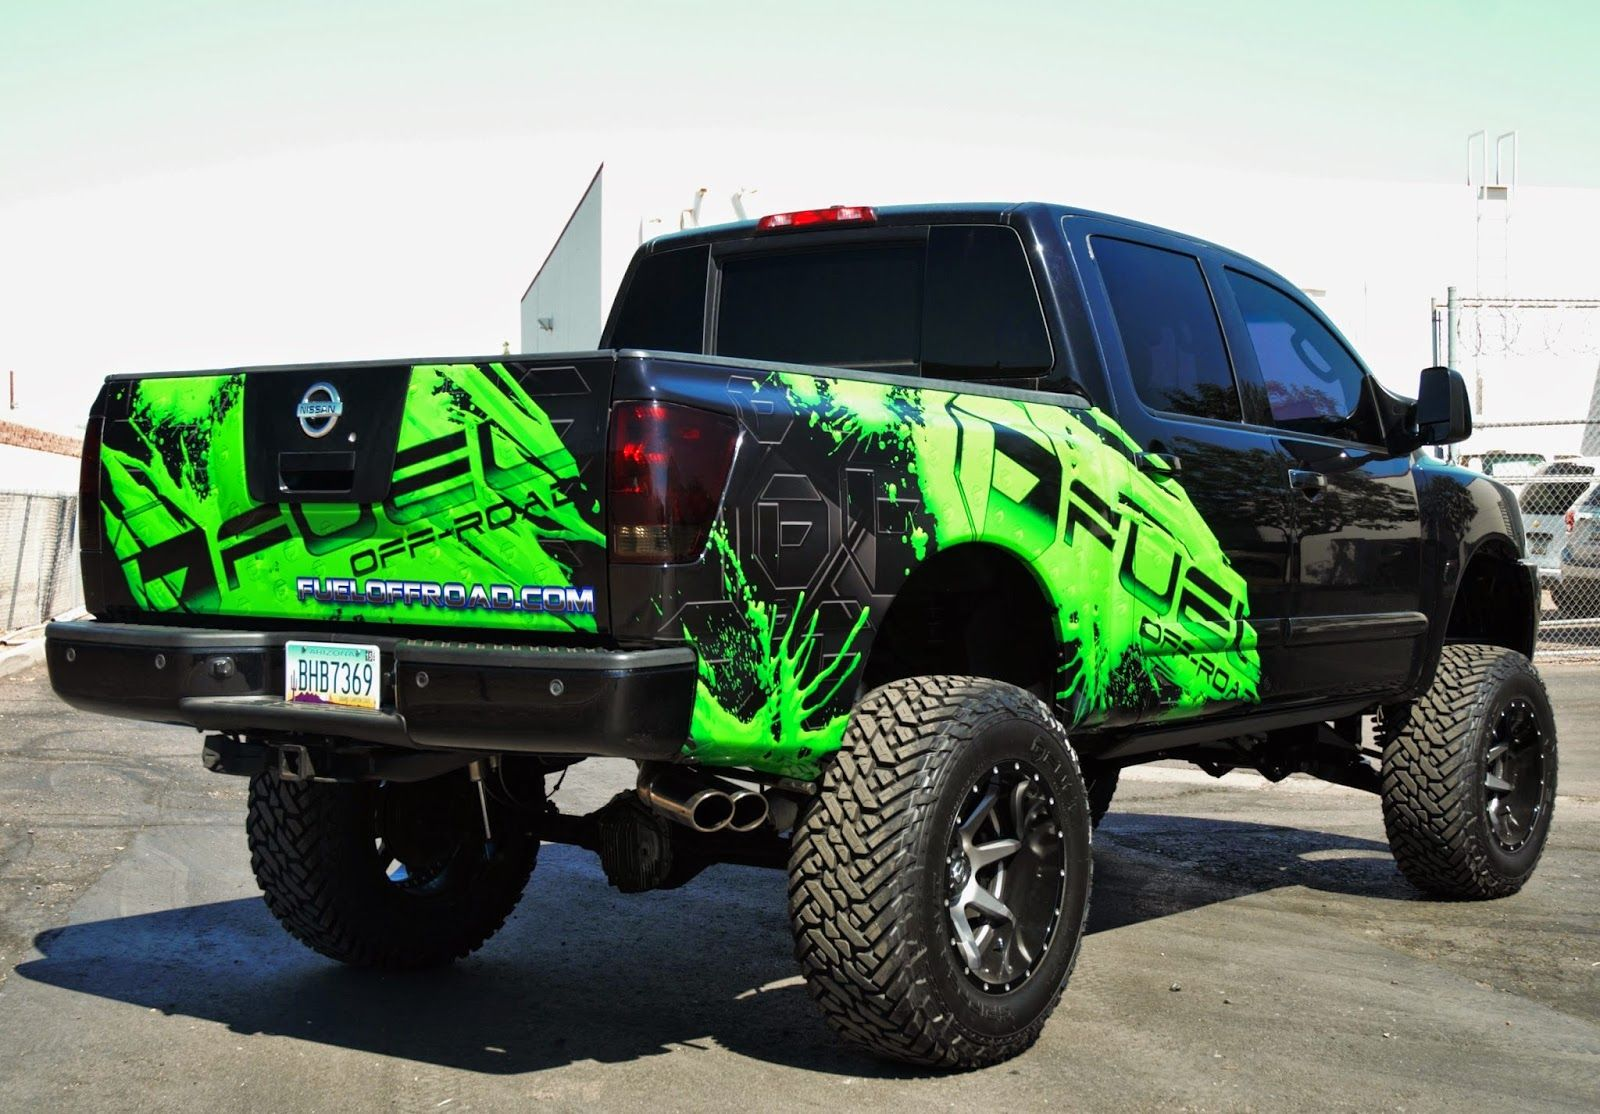 Related image Truck wraps graphics, Truck graphics, Car